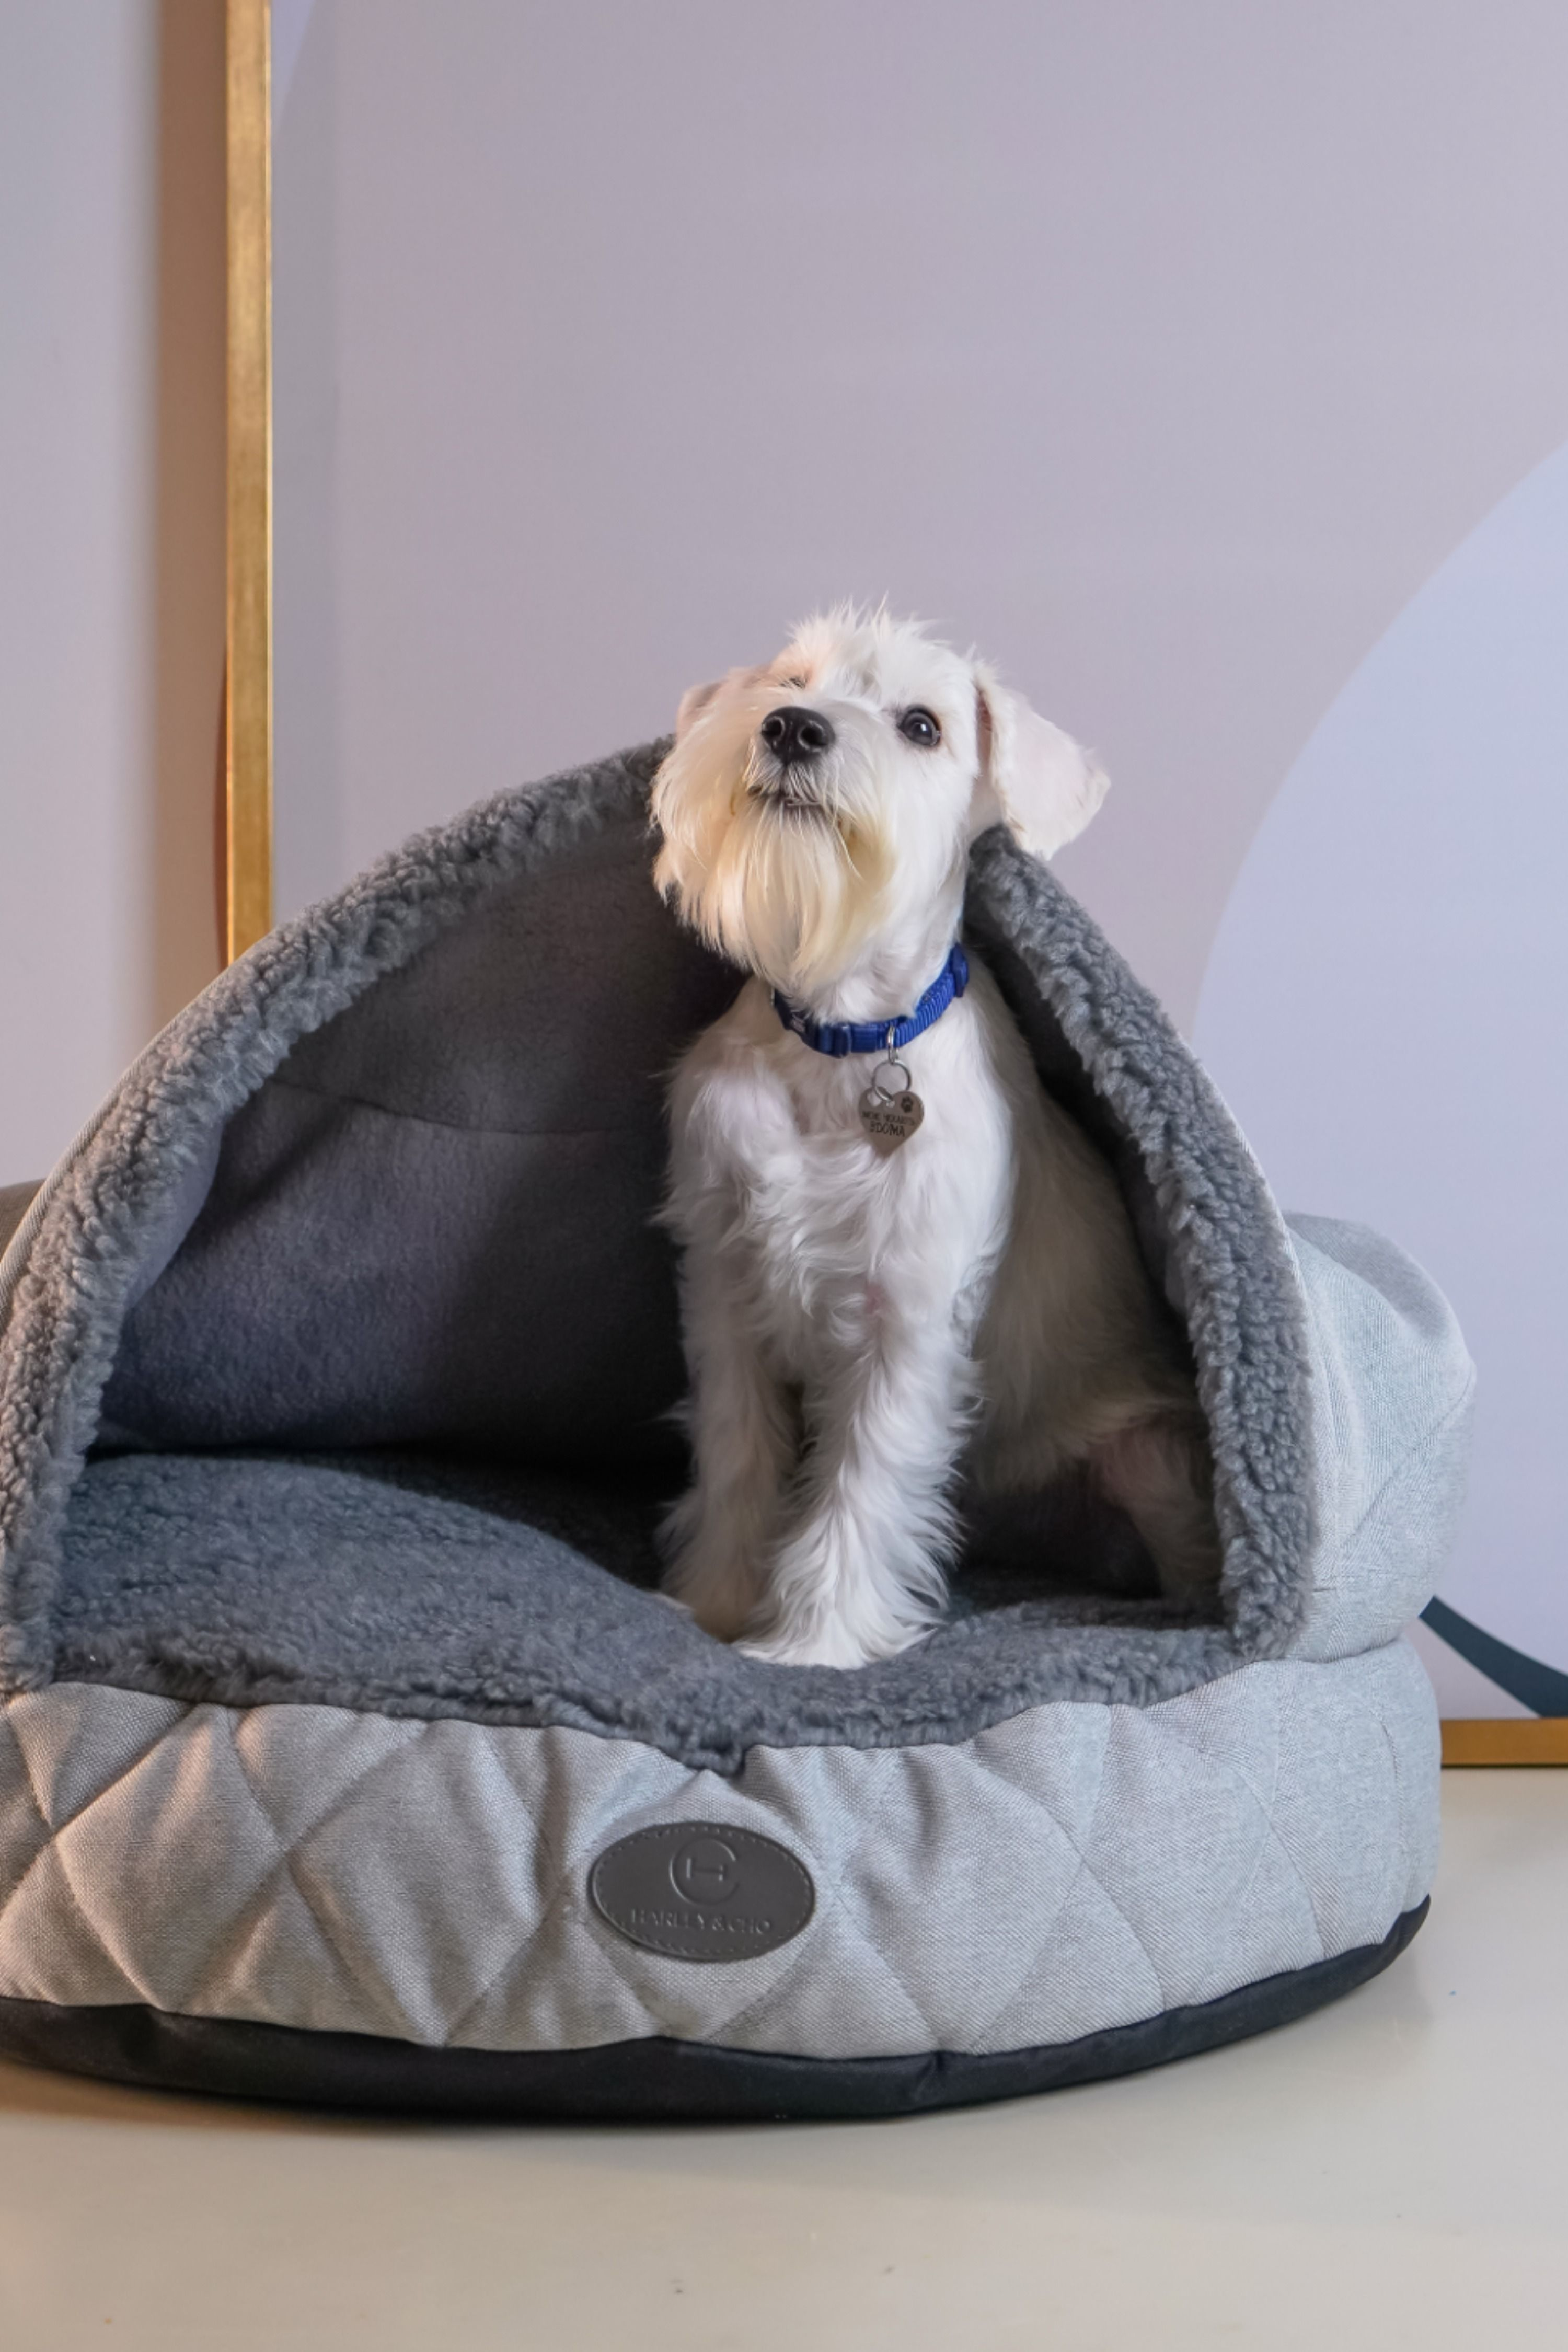 Plush Cave Bed For Dog Bed Cave Snuggly Bedding Italian Greyhound Sleeping Bags Snuggle Bags For Iggy In 2021 Pet Safety Italian Greyhound Cat Bed